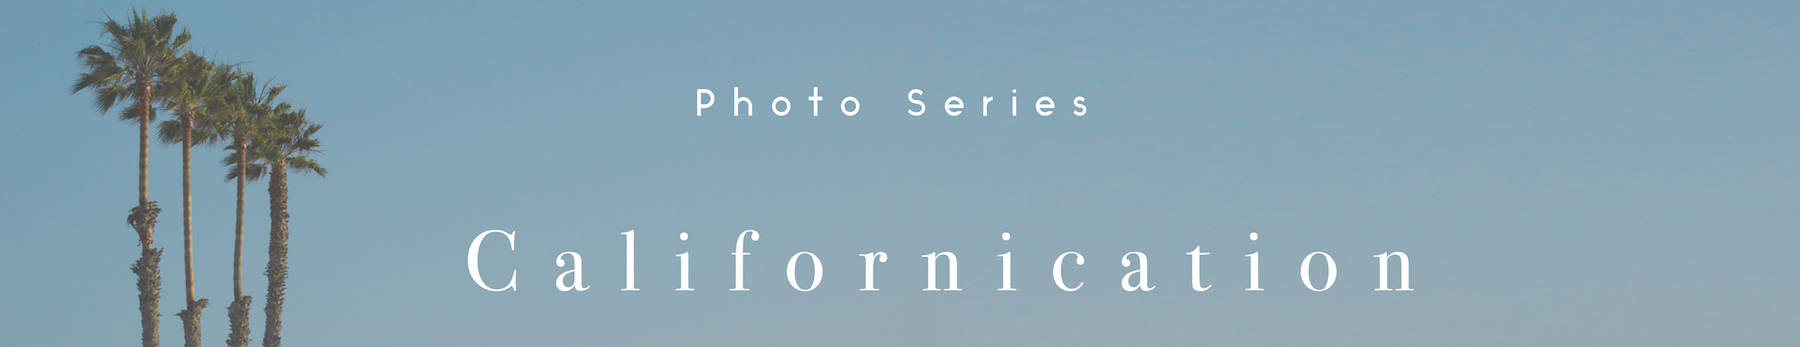 Californiation Series Header.png